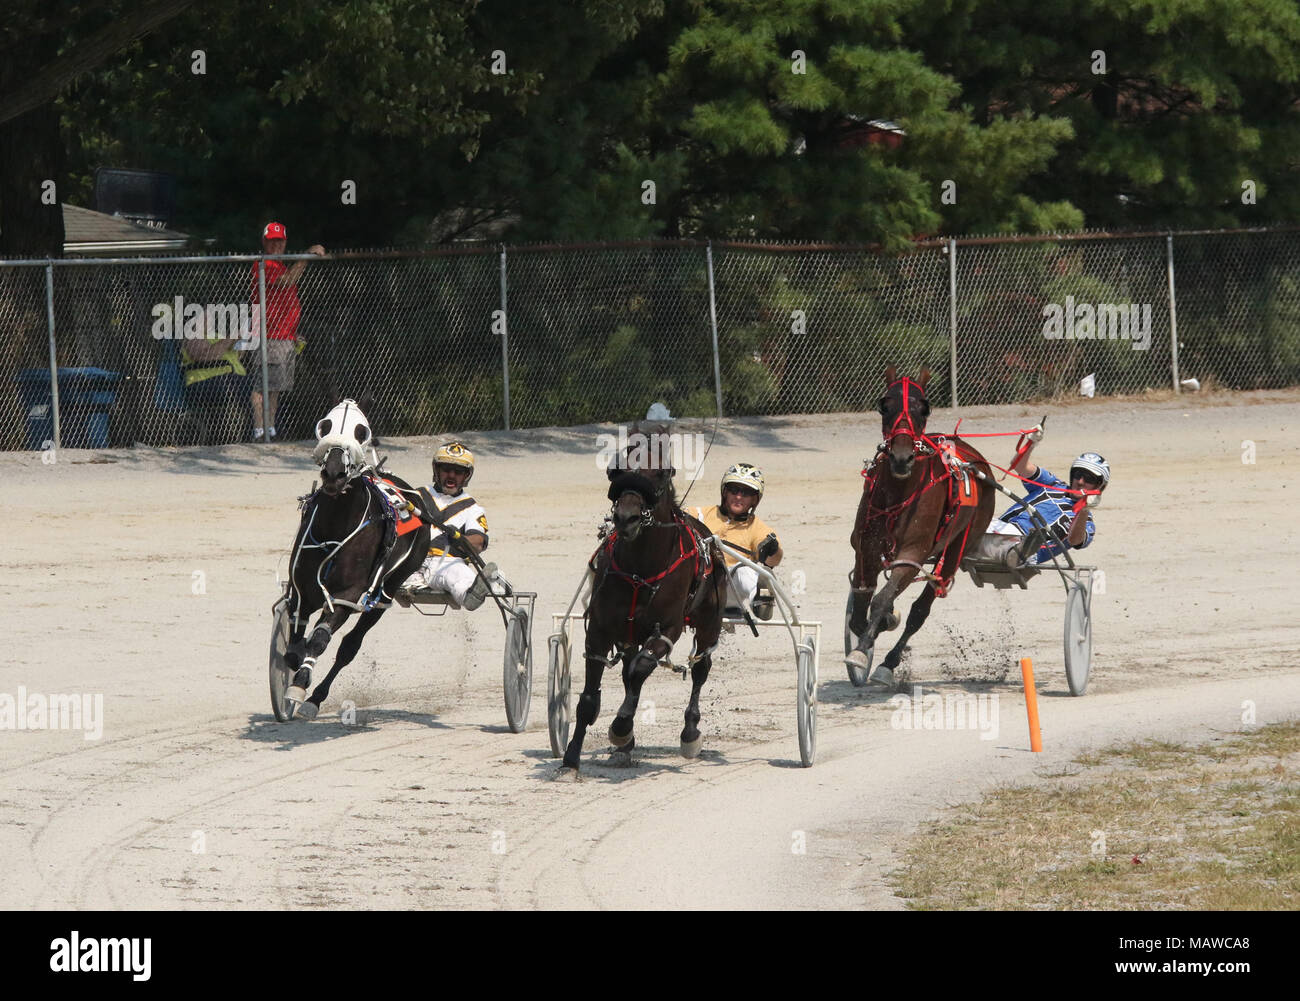 Male riders. Horse Harness Racing. Canfield Fair. Mahoning County Fair. Canfield, Youngstown, Ohio, USA. - Stock Image